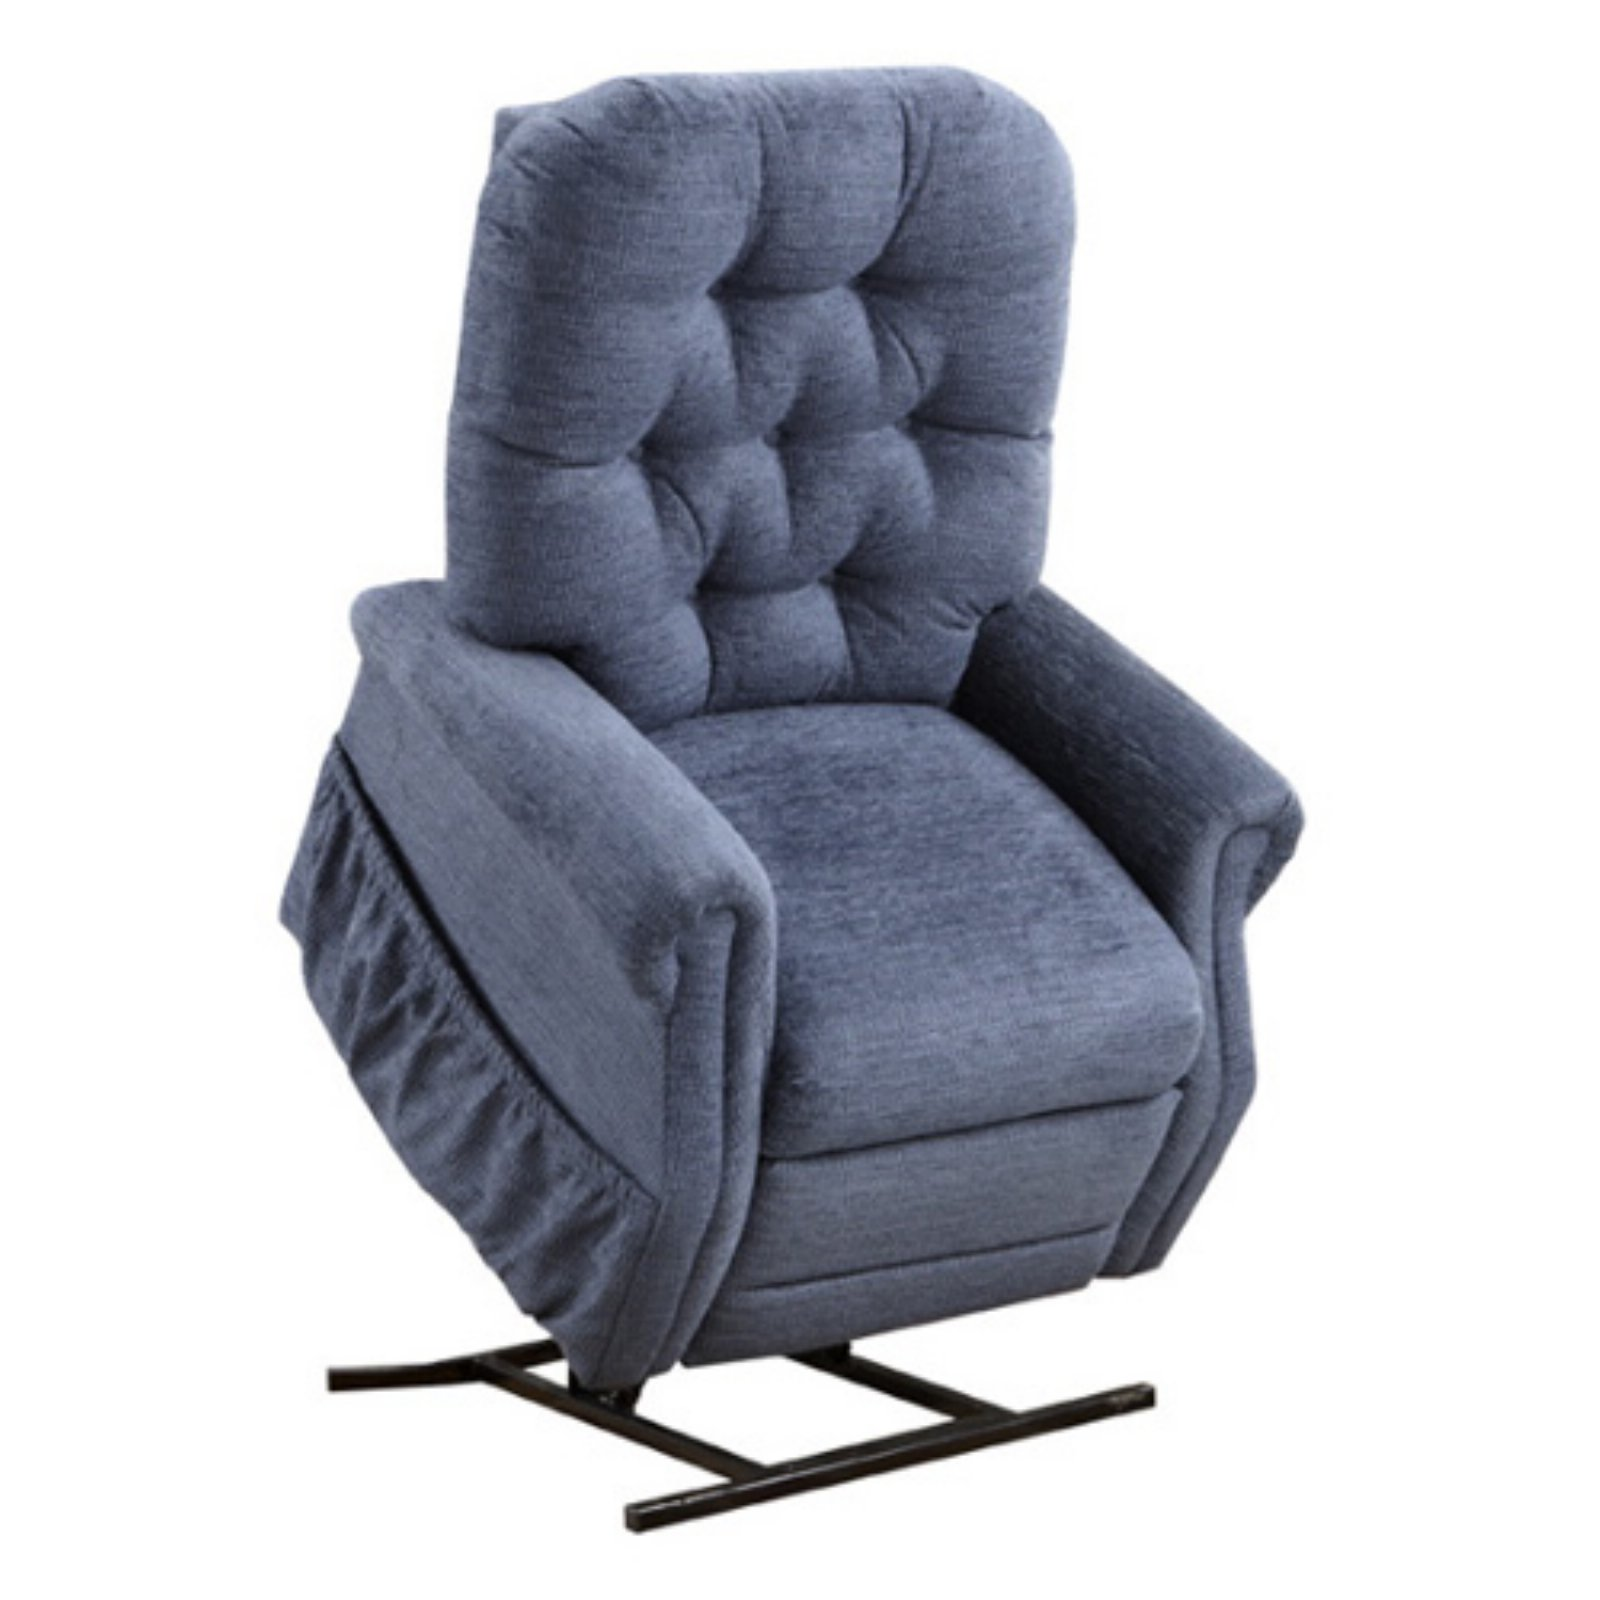 Med-Lift Encounter Wide Lift Recliner